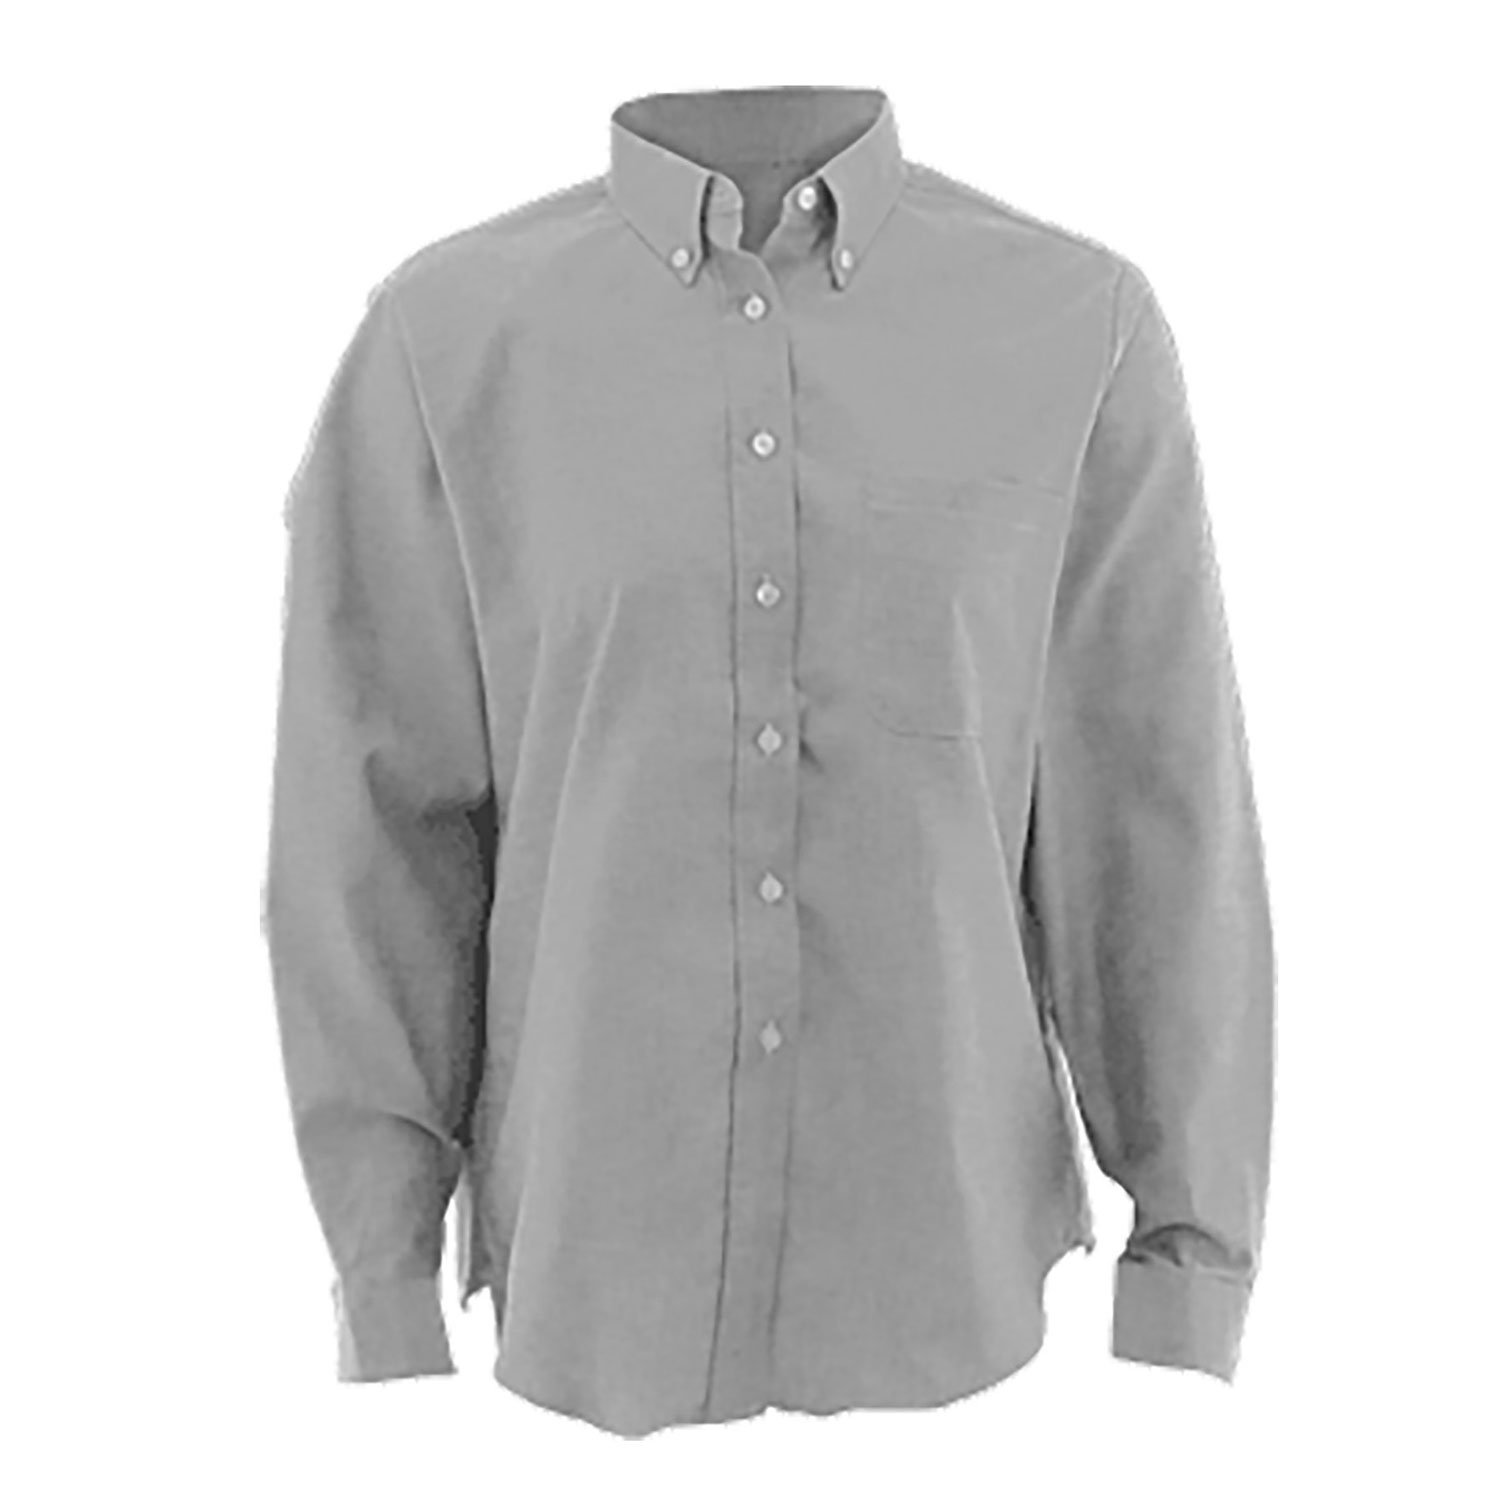 Edwards Garments Ladie's Long Sleeve Oxford Shirt